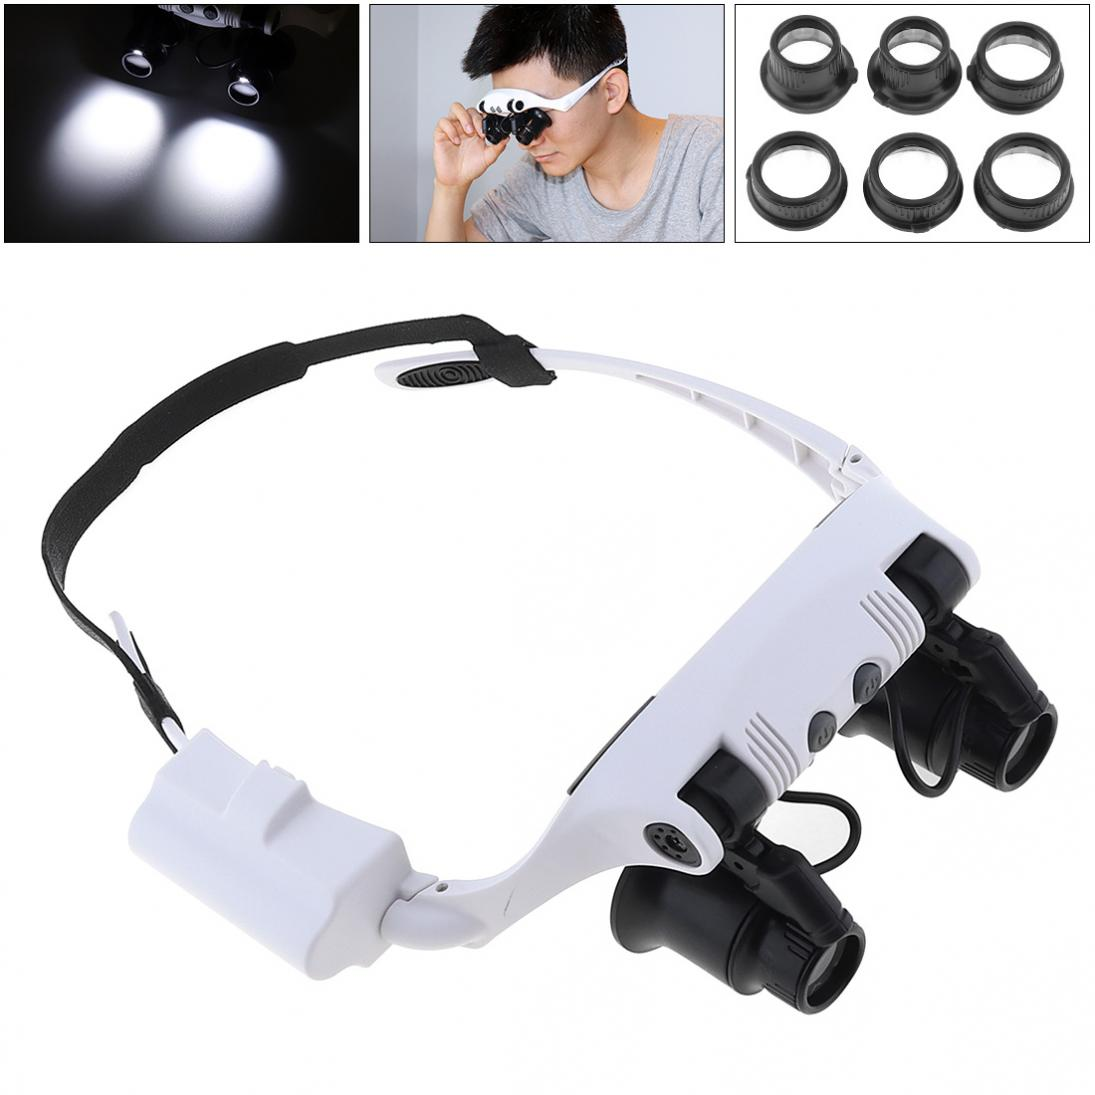 Headband 10X 15X 20X 25X LED Light Glasses Magnifier Watchmaker Jewelry Optical Lens Glass Magnifier Loupe Instrument